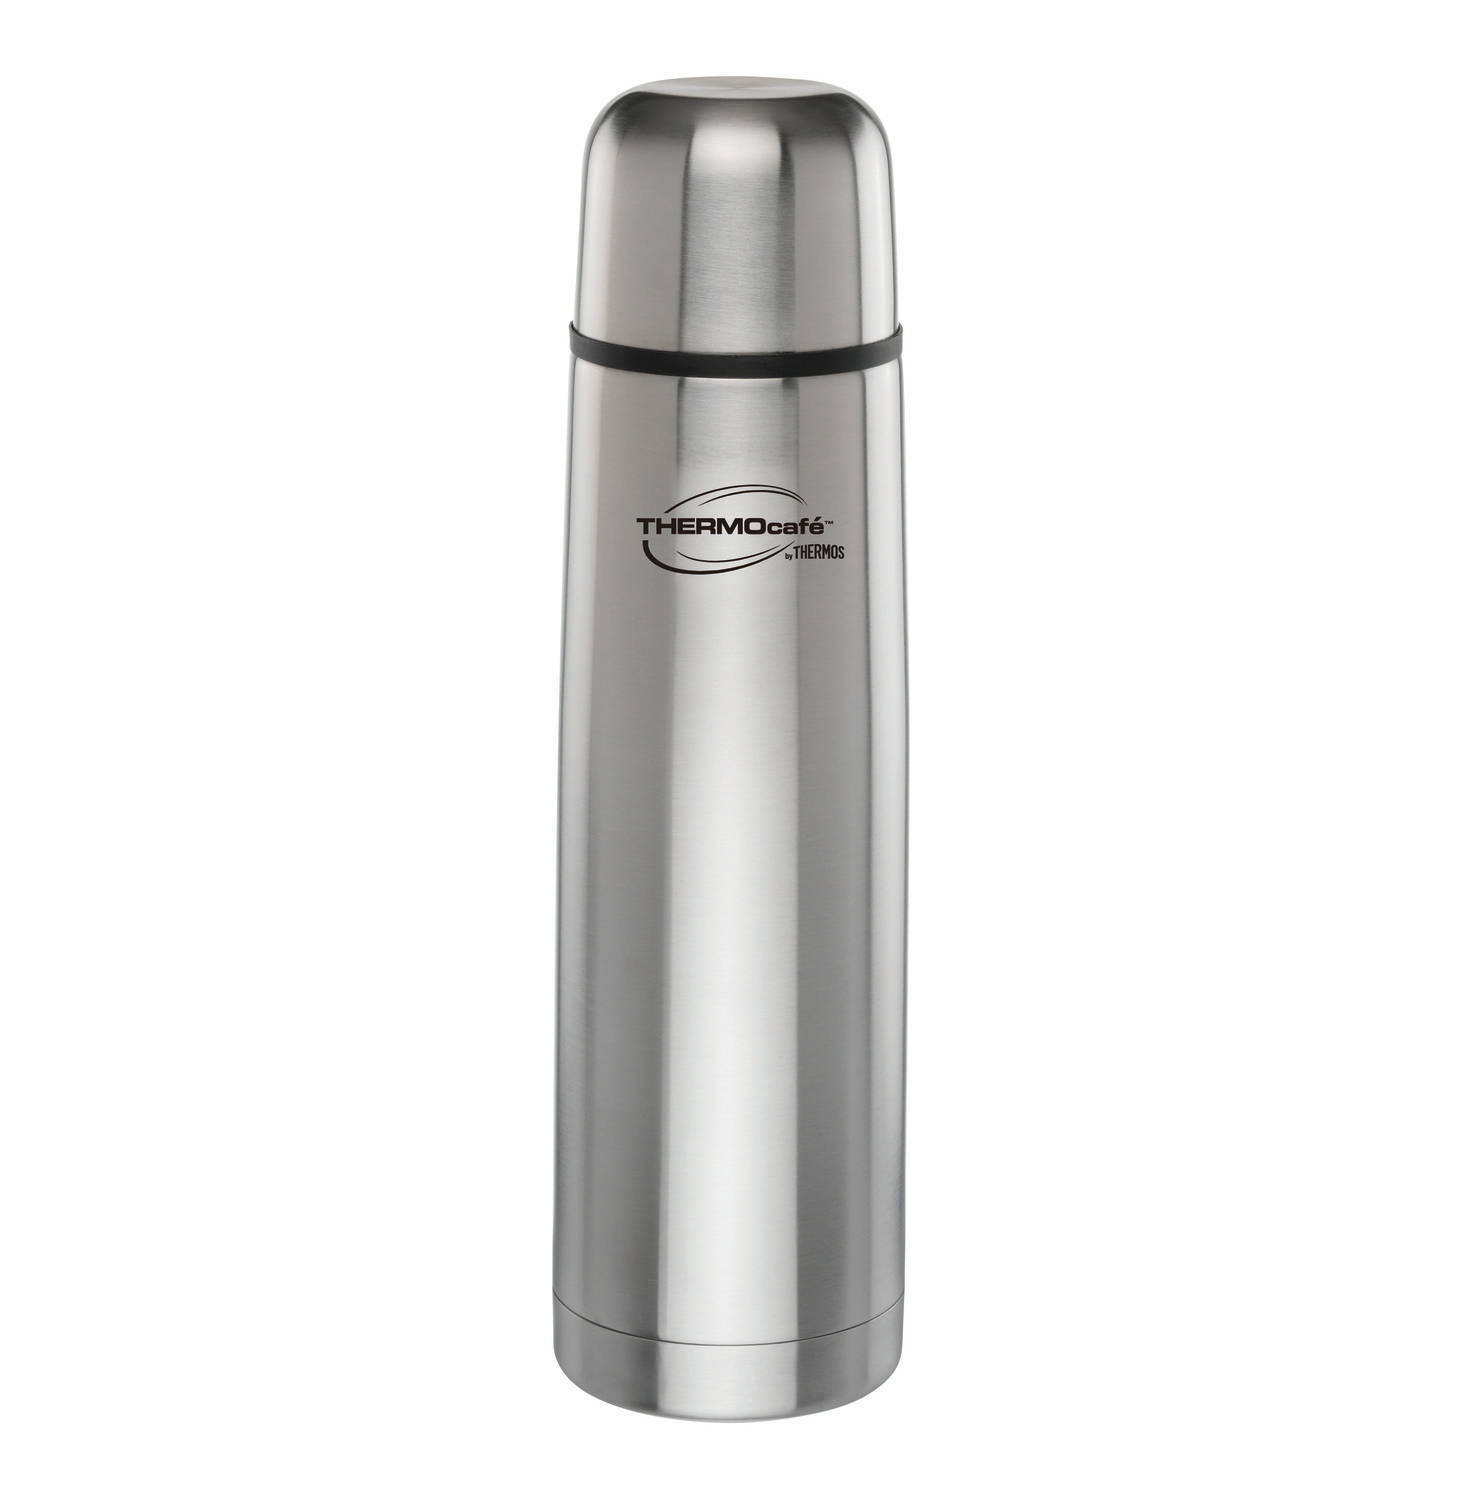 Thermos Cafe Thermos Thermocafe Vacuum Insulated 24oz Stainless Steel